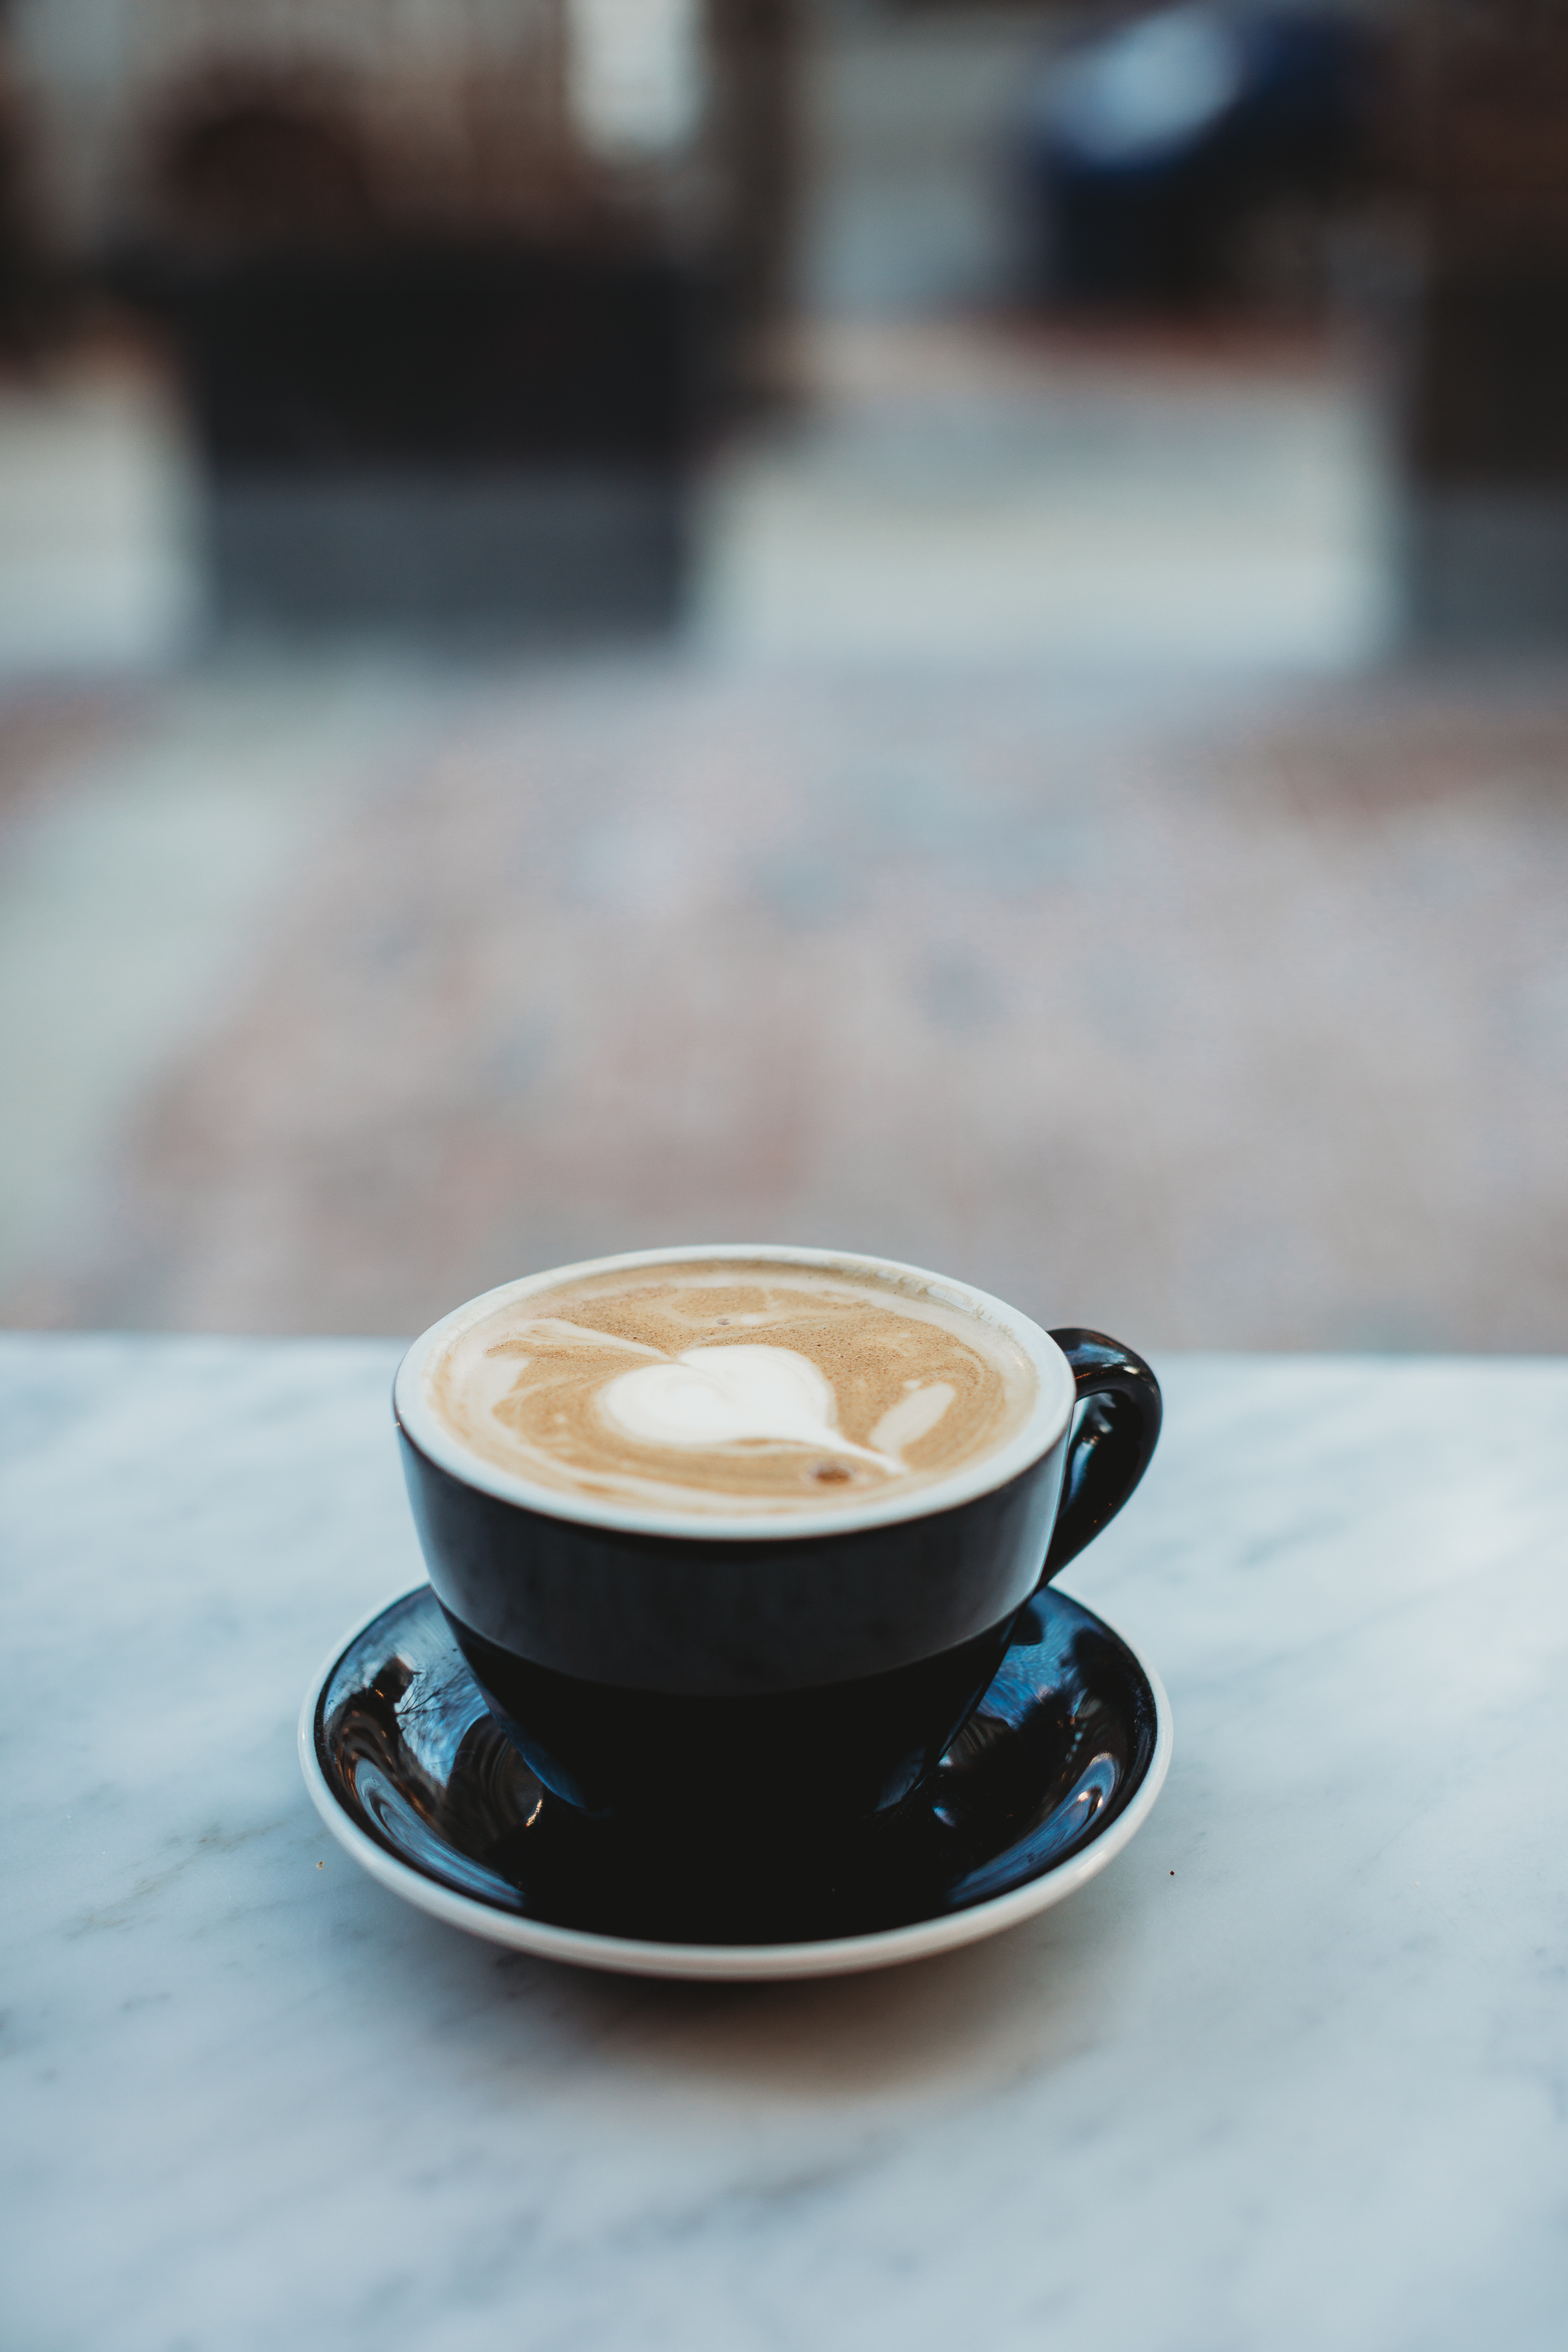 Beautiful latte with oat milk—the best! At Tatte Back Bay. Boston family photographer Joy LeDuc.